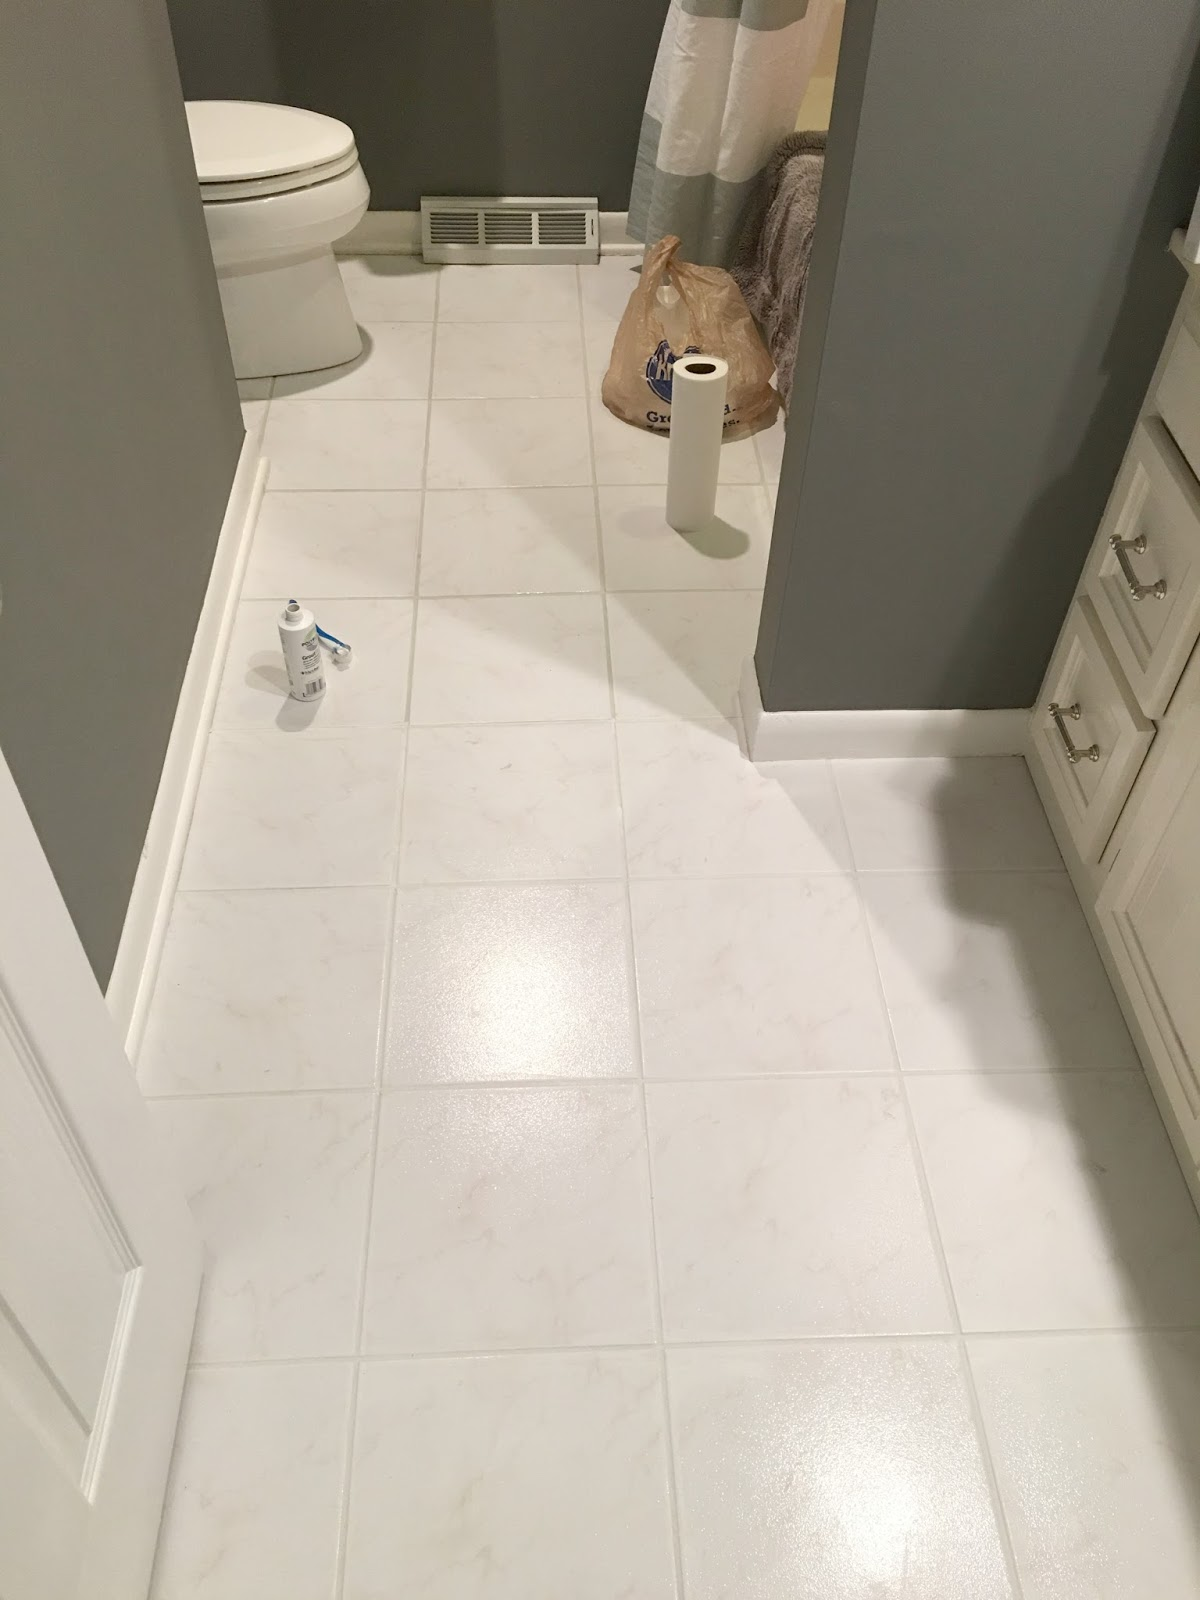 Superb diy tile grout cleaner